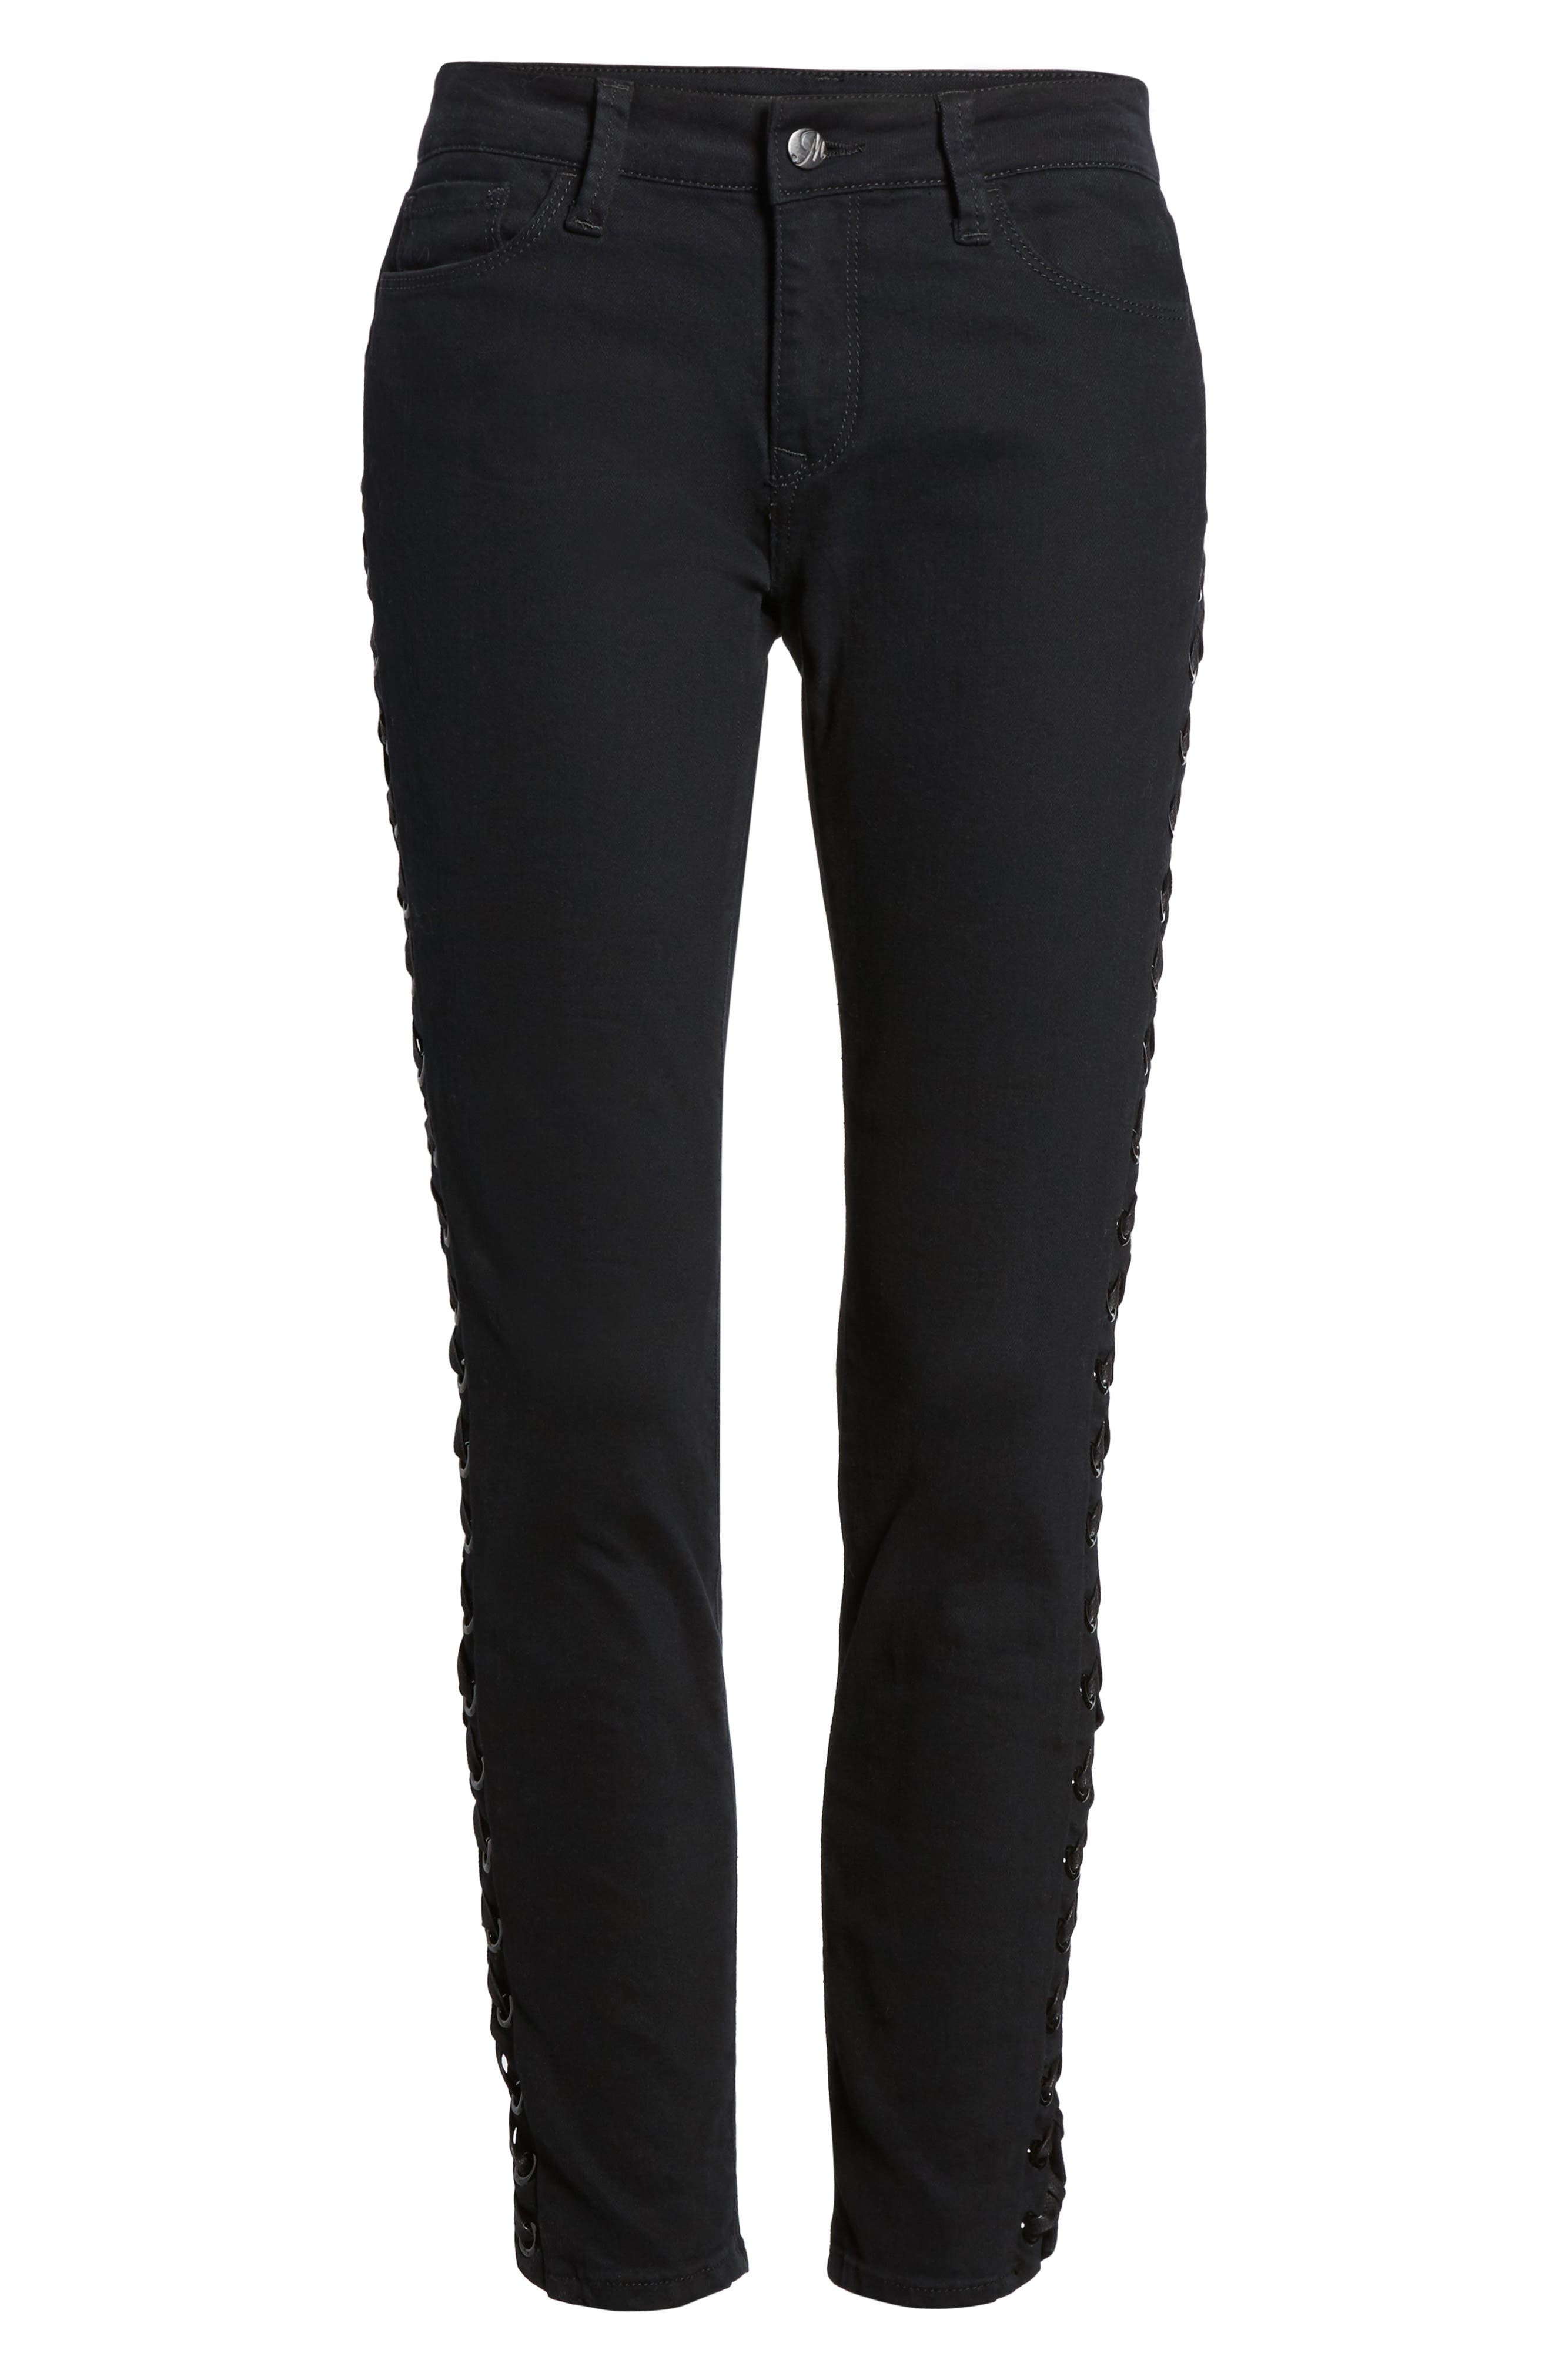 Adriana Lace-Up Super Skinny Jeans,                             Alternate thumbnail 6, color,                             001